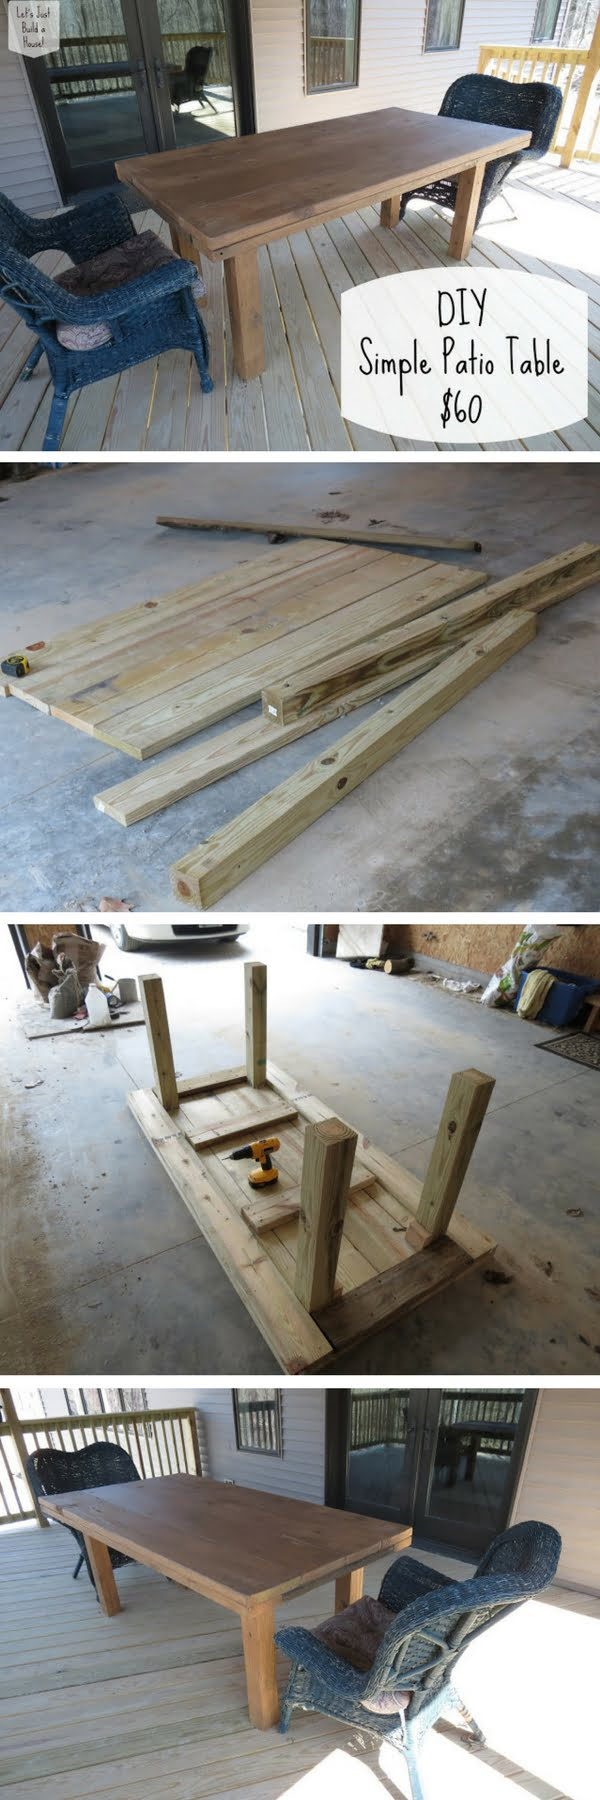 Check out how to build a simple DIY patio table